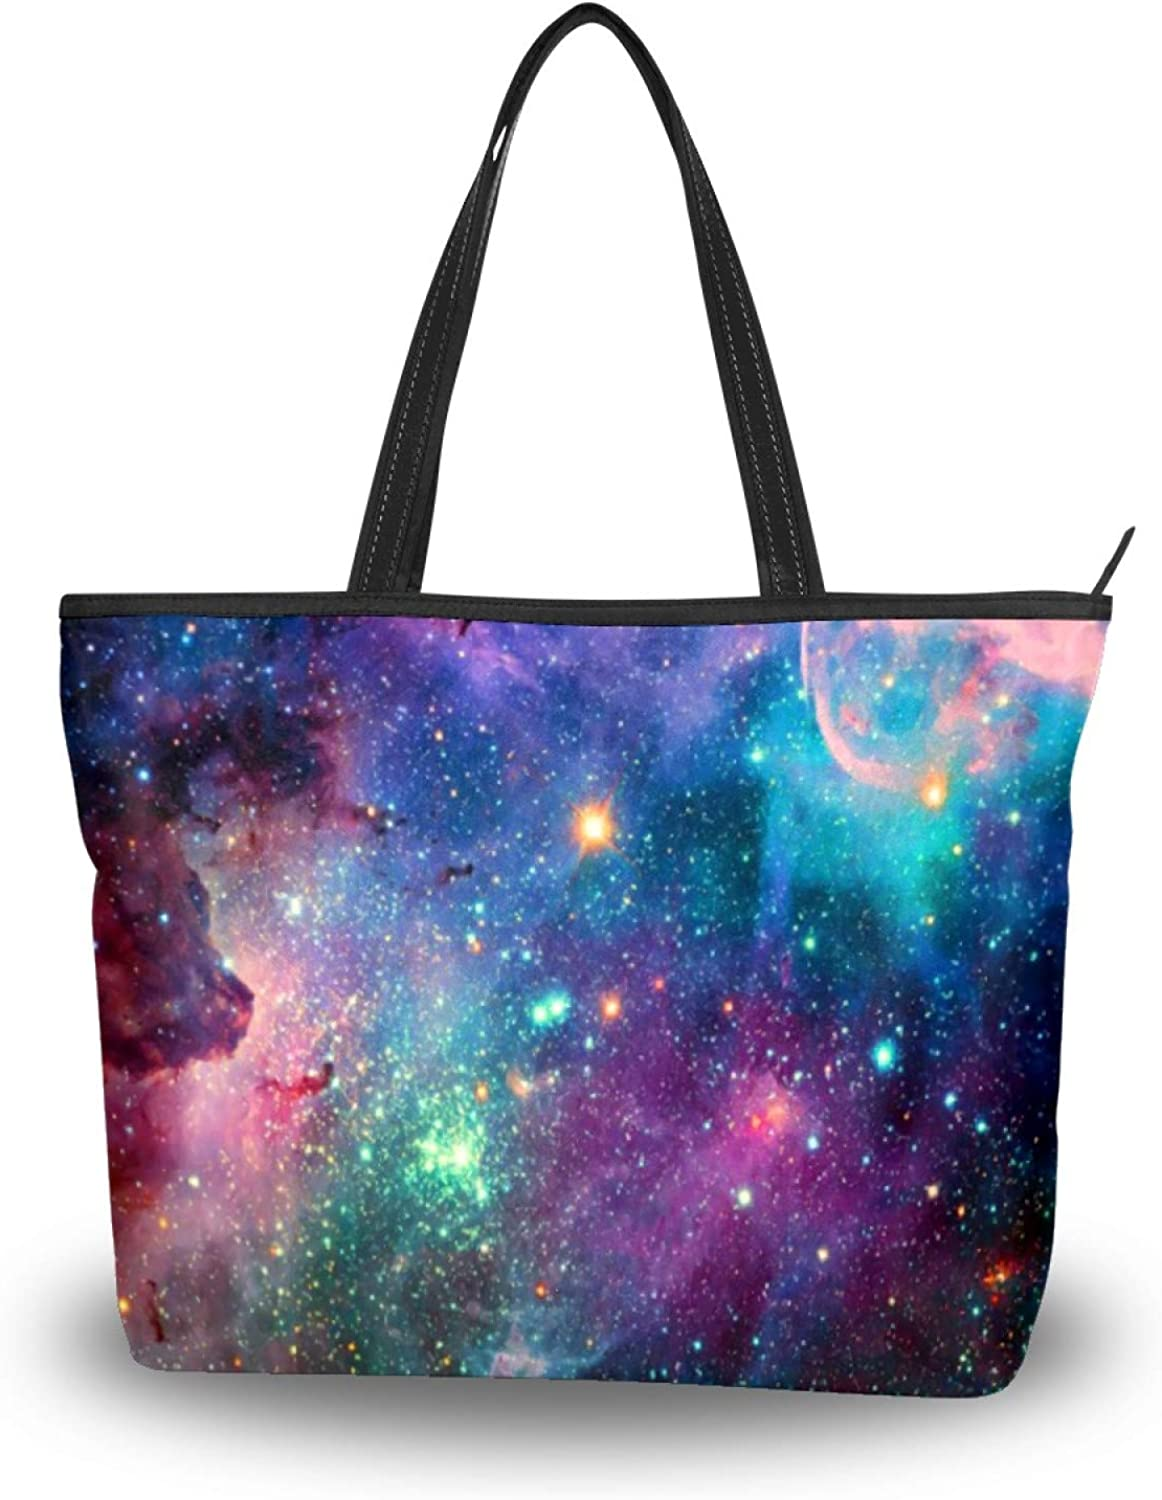 50 New color Cent Original Starry Sky Bag Tote Polyester shipfree Lightweight Wome